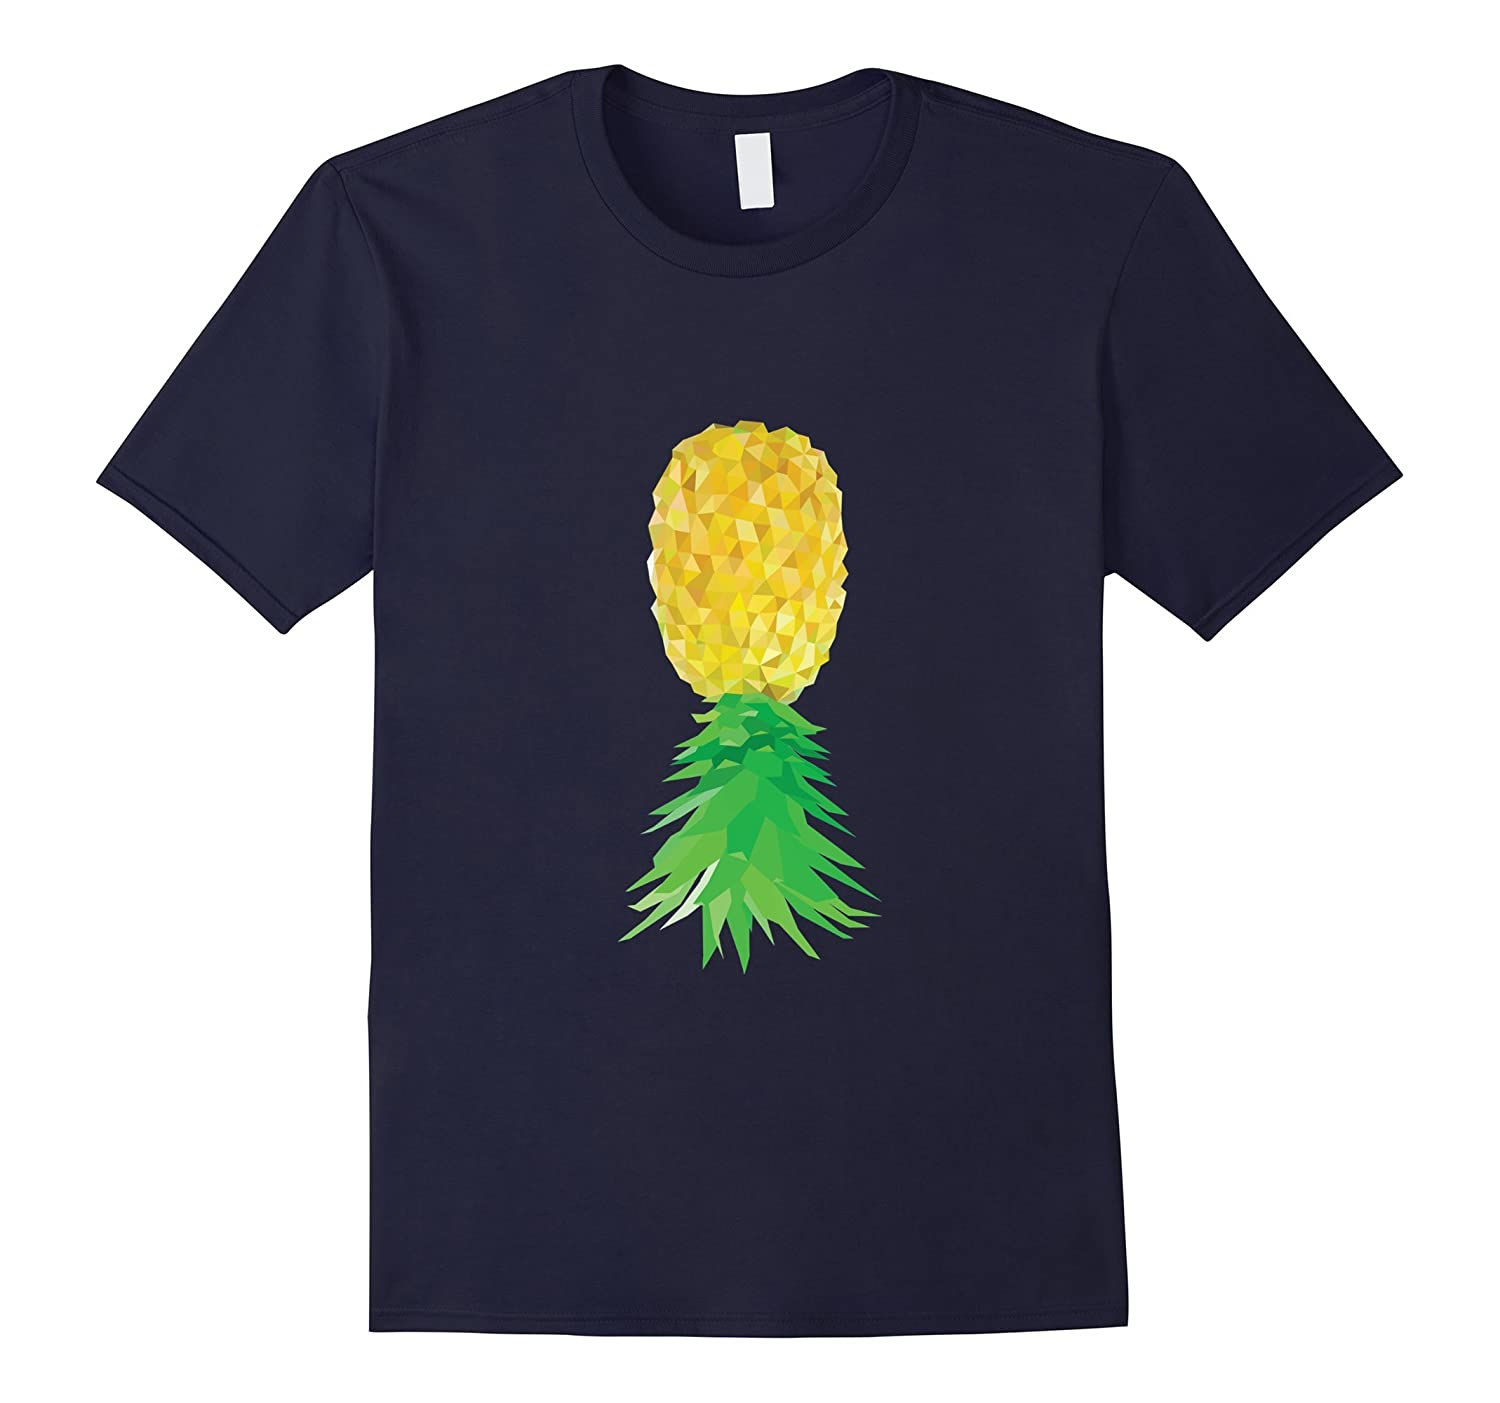 Upside Down Pineapple Shirt - Adult Swingers Tee-TH